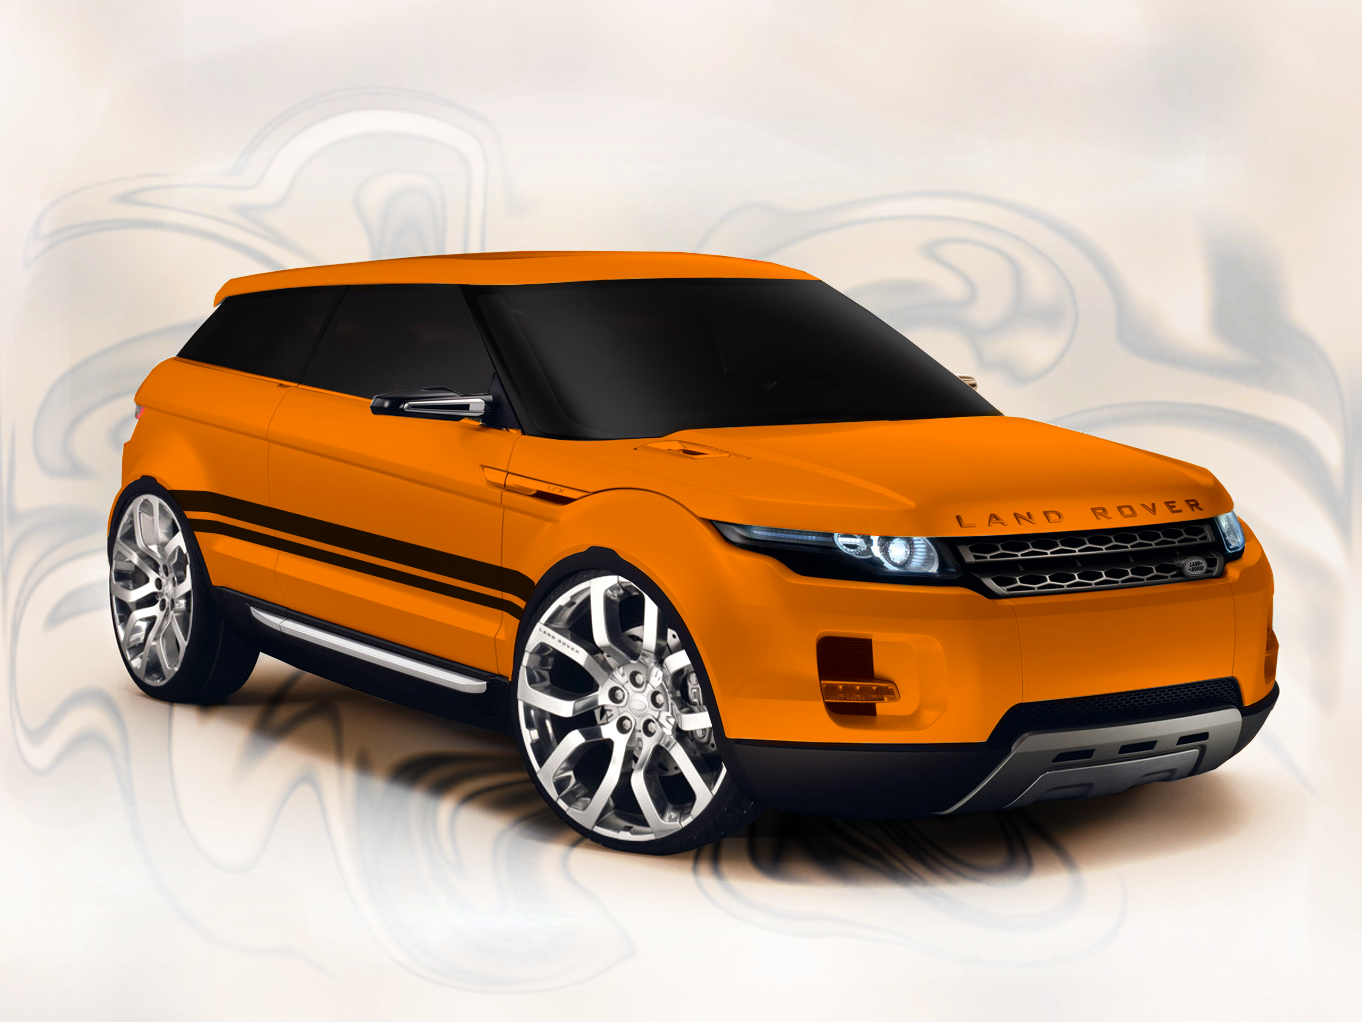 Tuning Virtual Land Rover Lrx Concept High Resolution Wallpaper Free